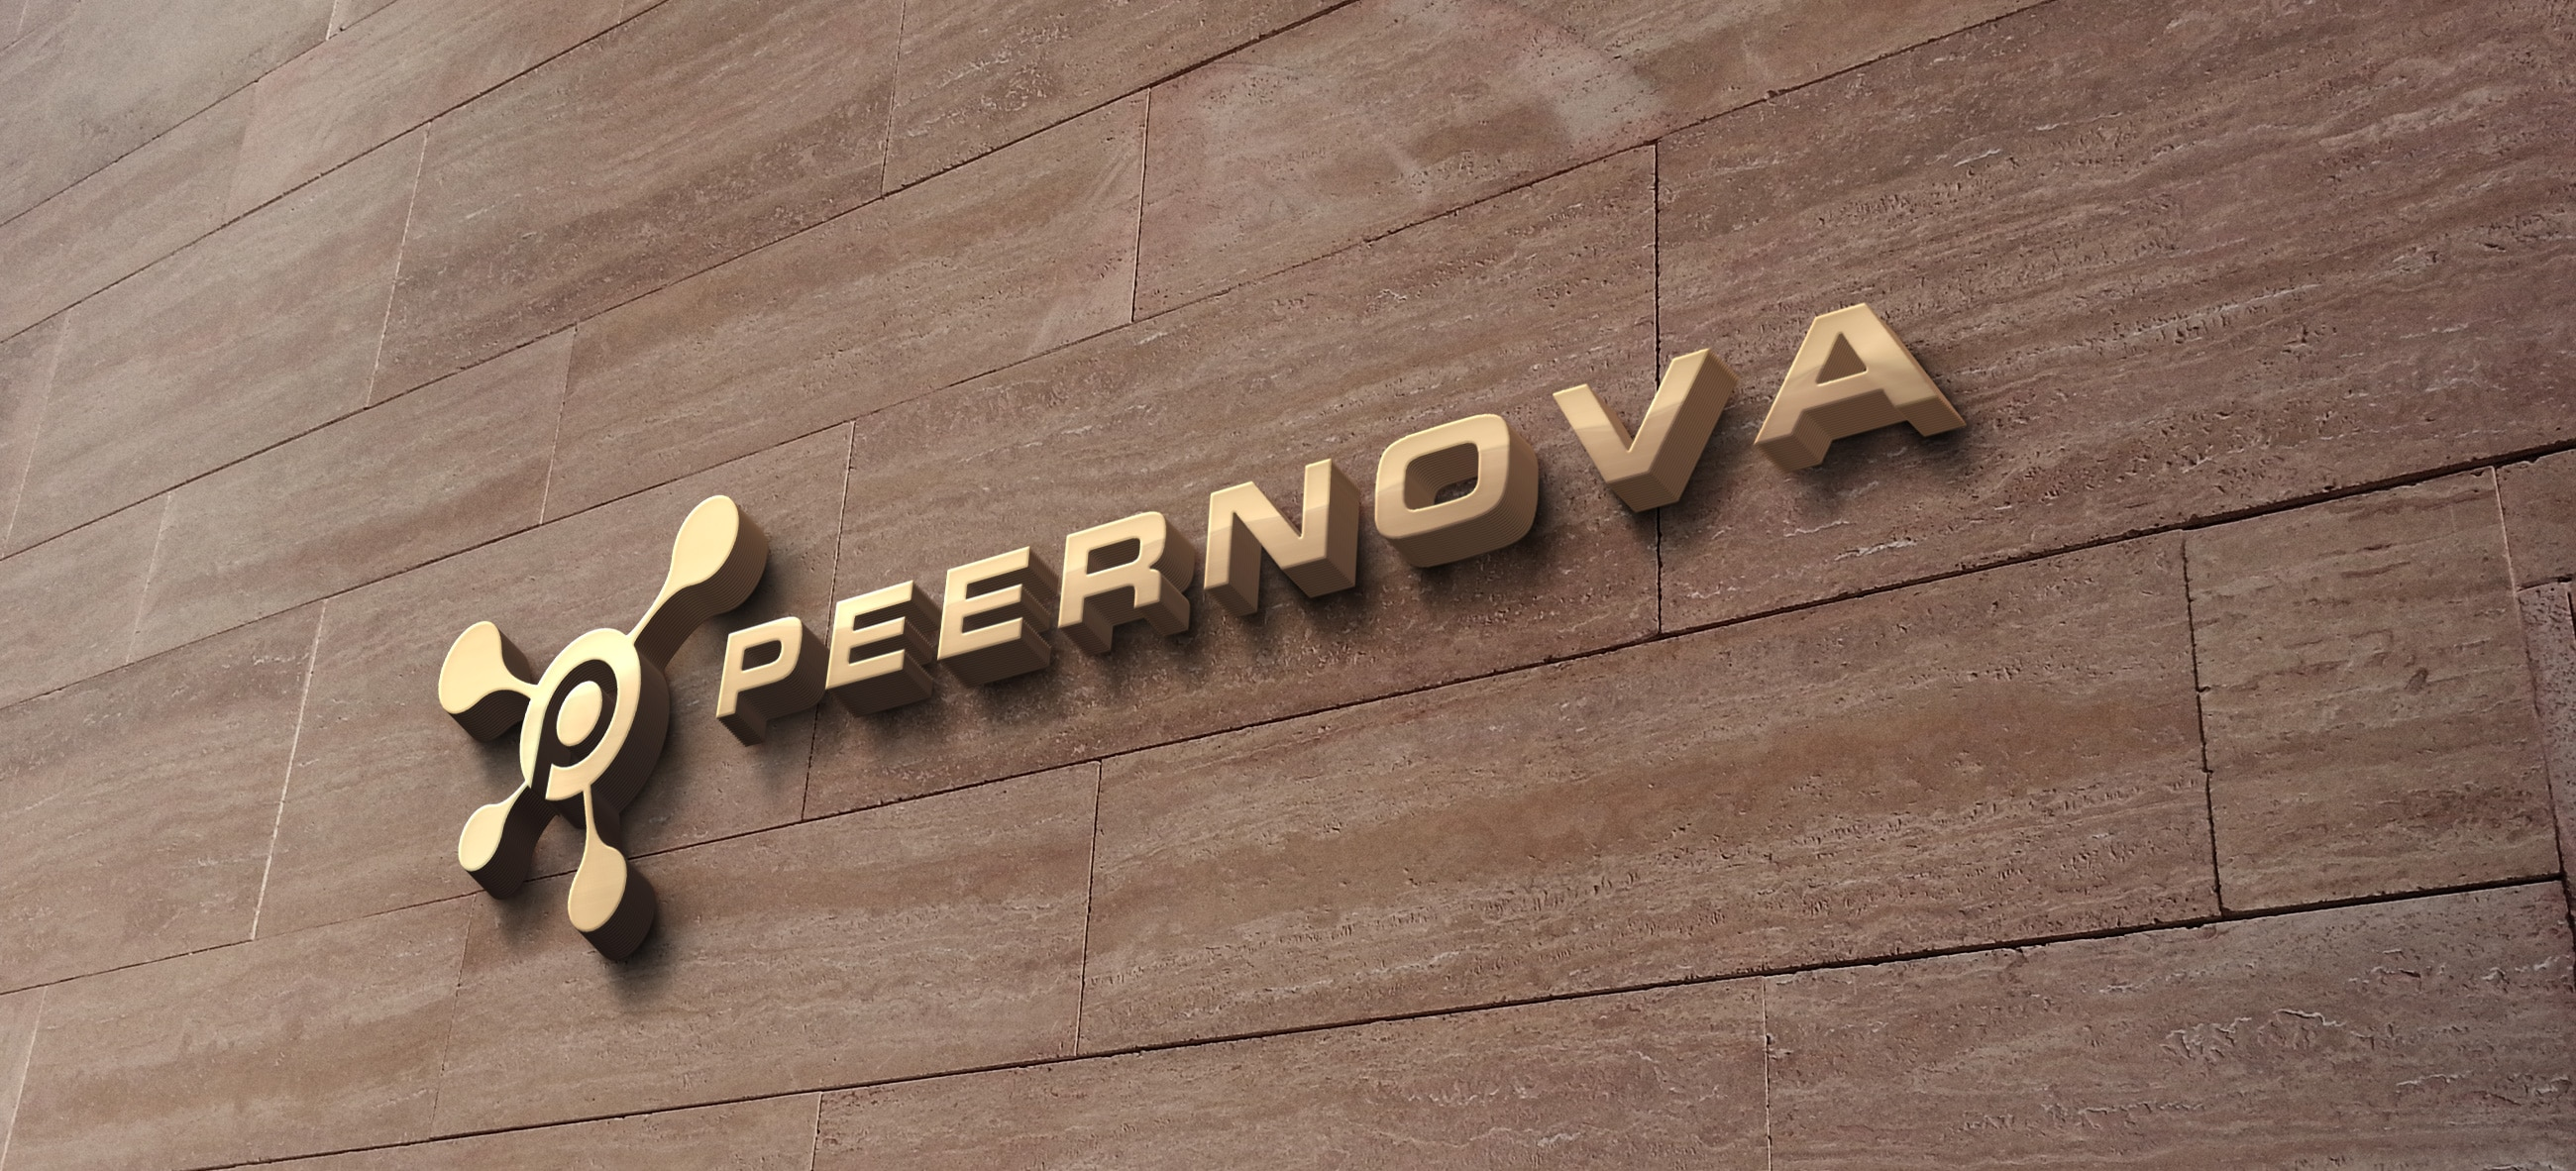 PeerNova Gets $5 Million Investment from Overstock